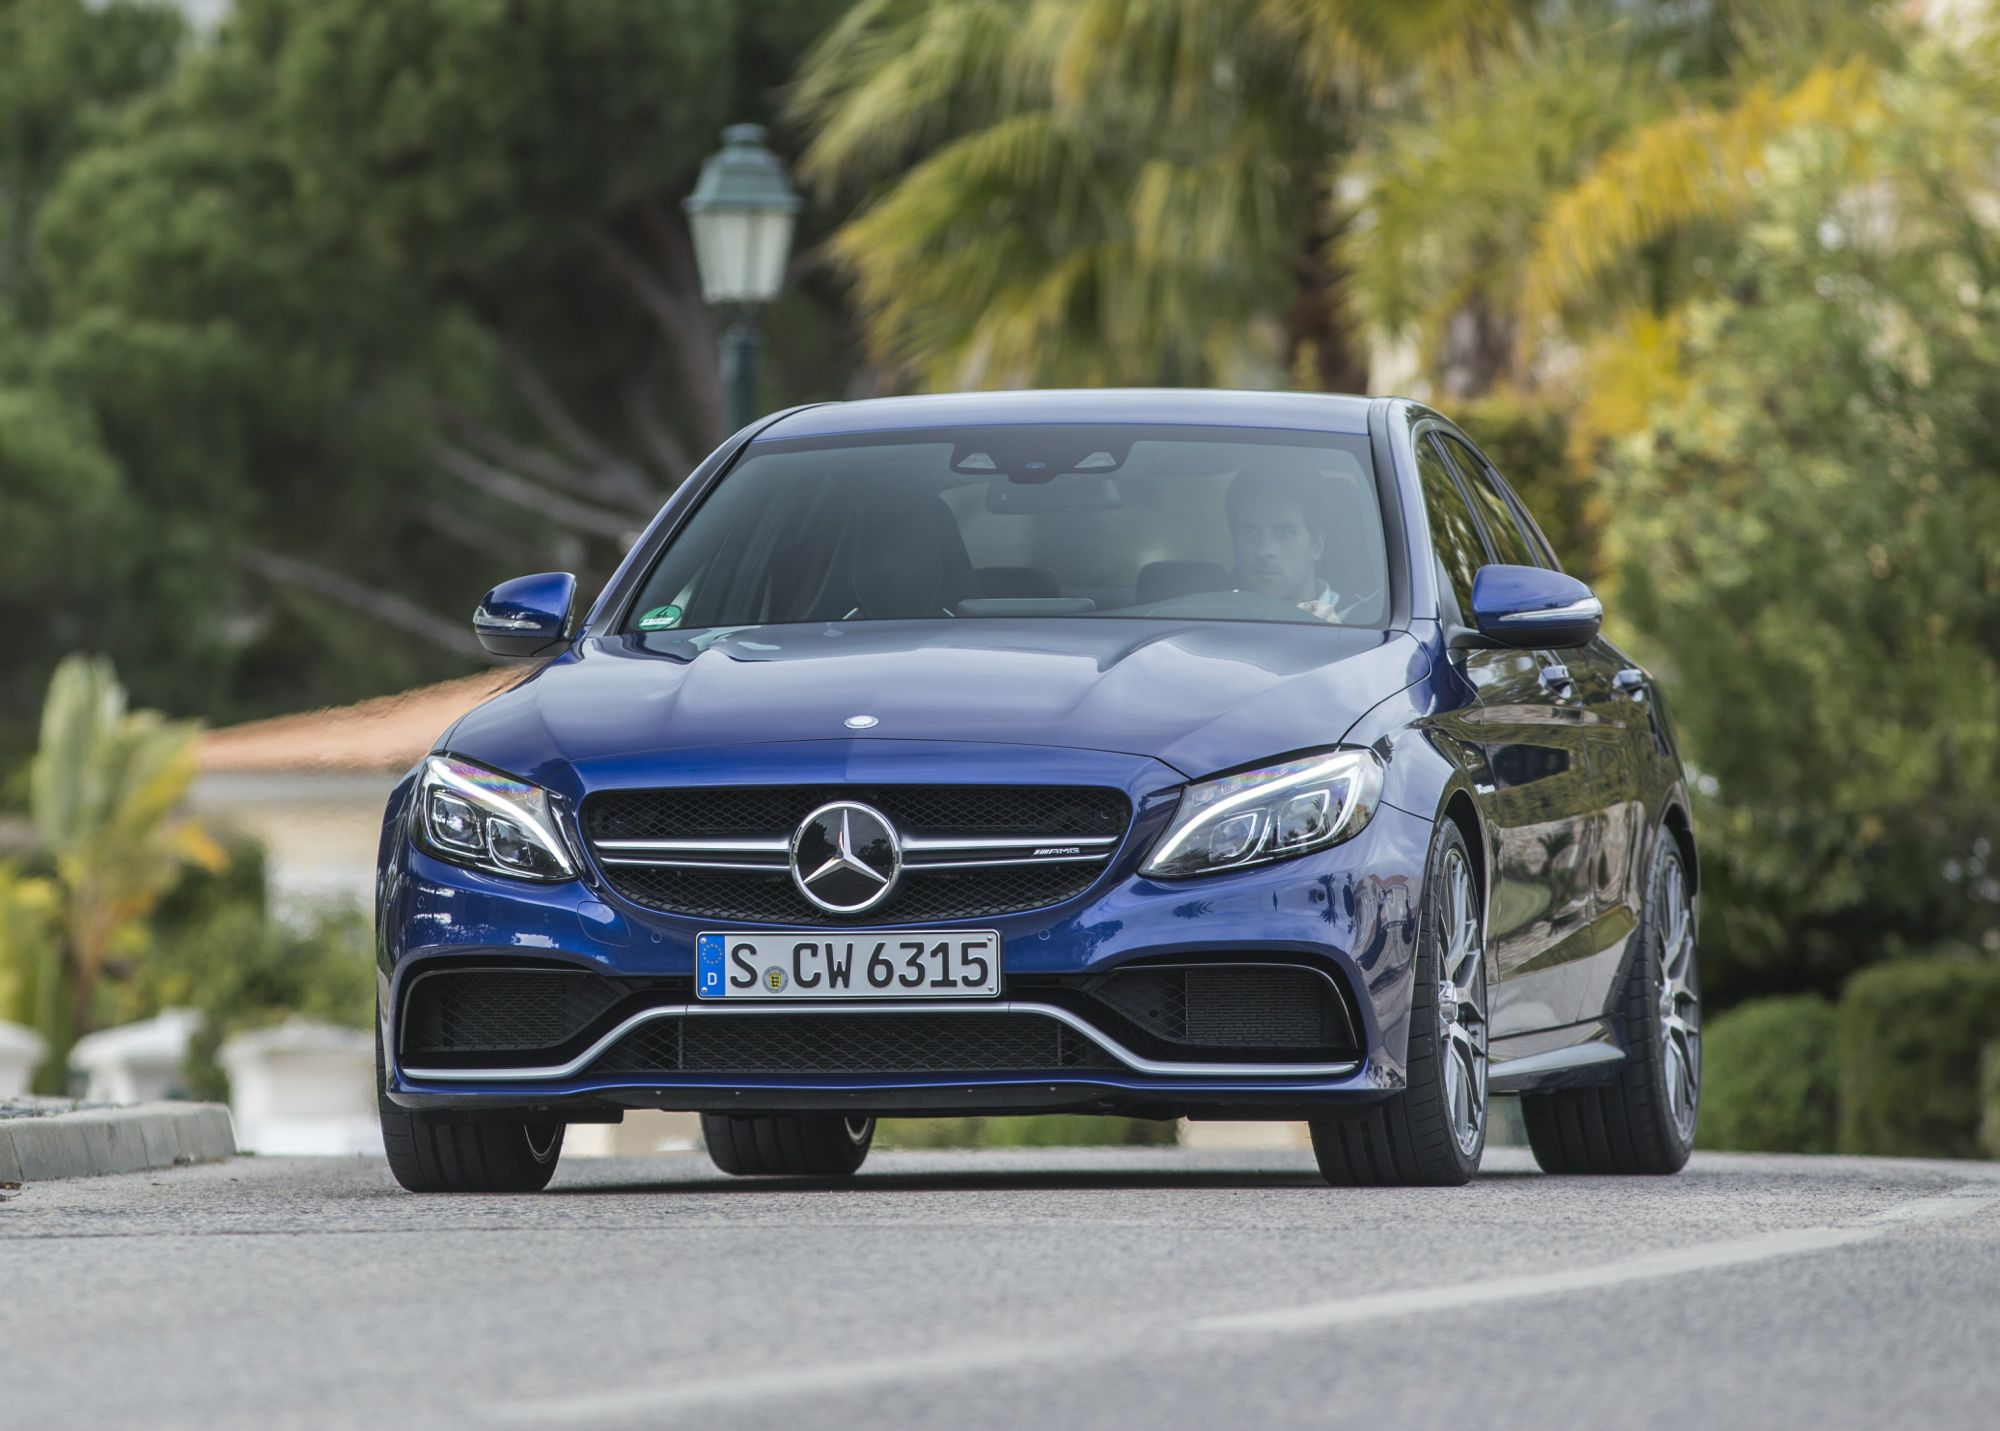 2015 Mercedes Amg C63 S Review Photos Caradvice